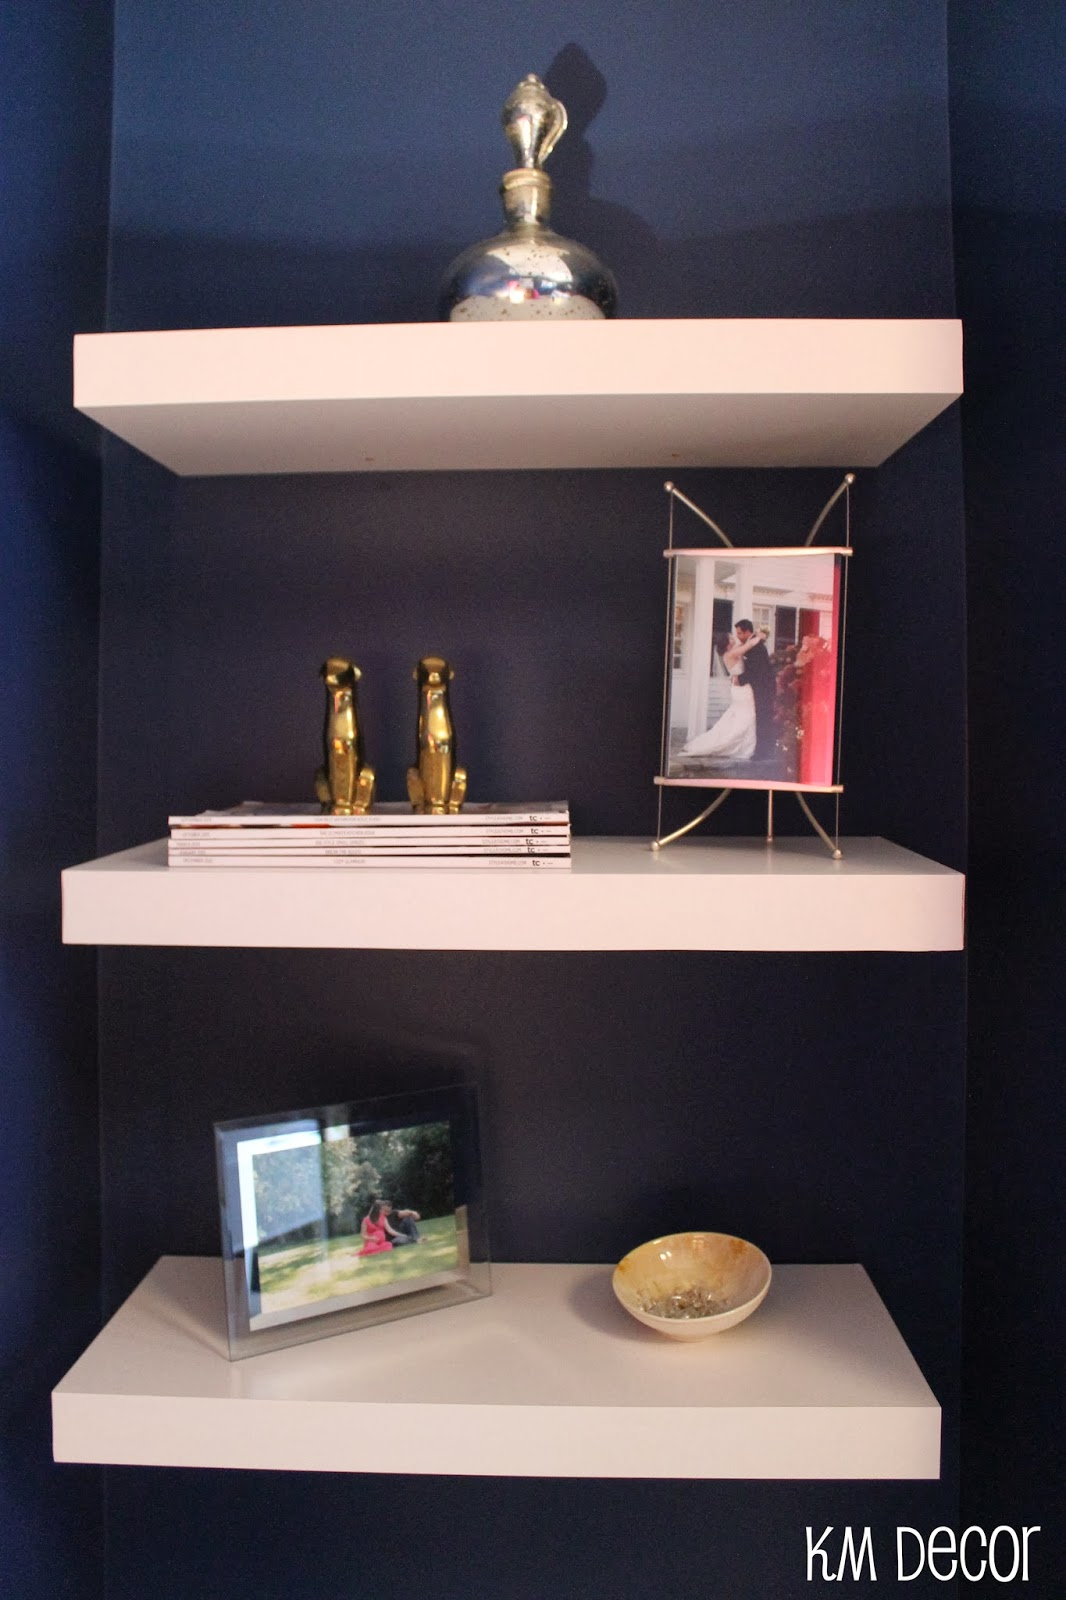 KM Decor: Floating Office Shelves